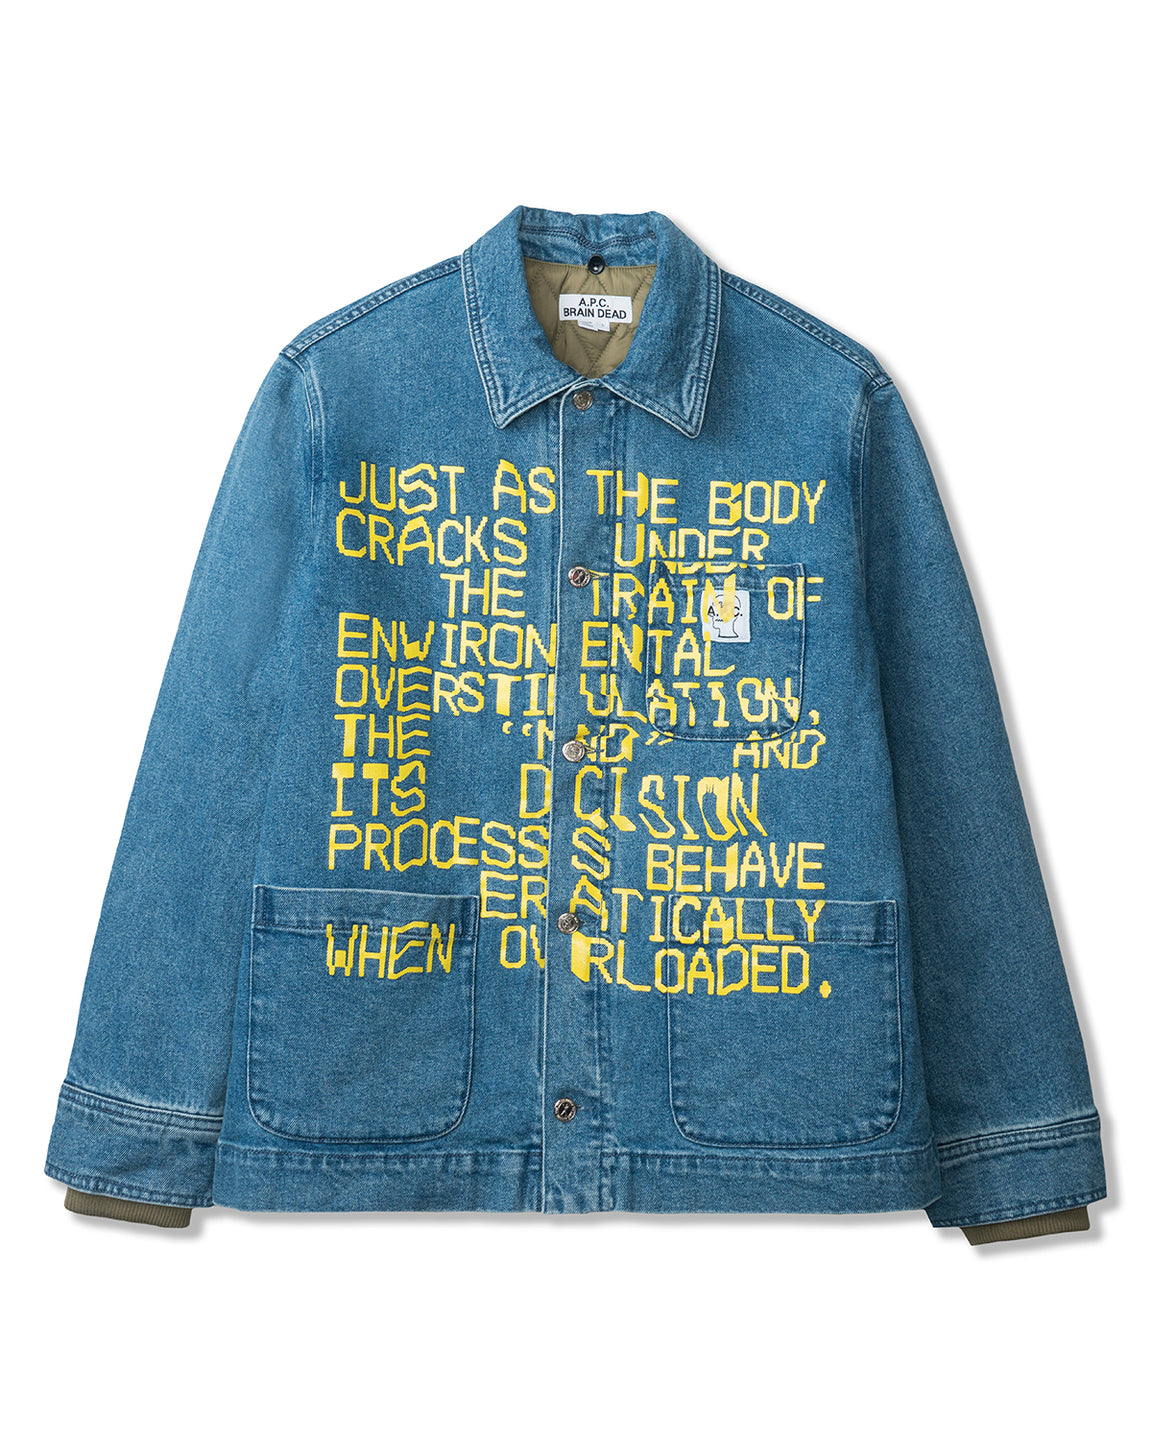 Men's Imhotep Japanese Denim Chore Jacket A.P.C. x Brain Dead